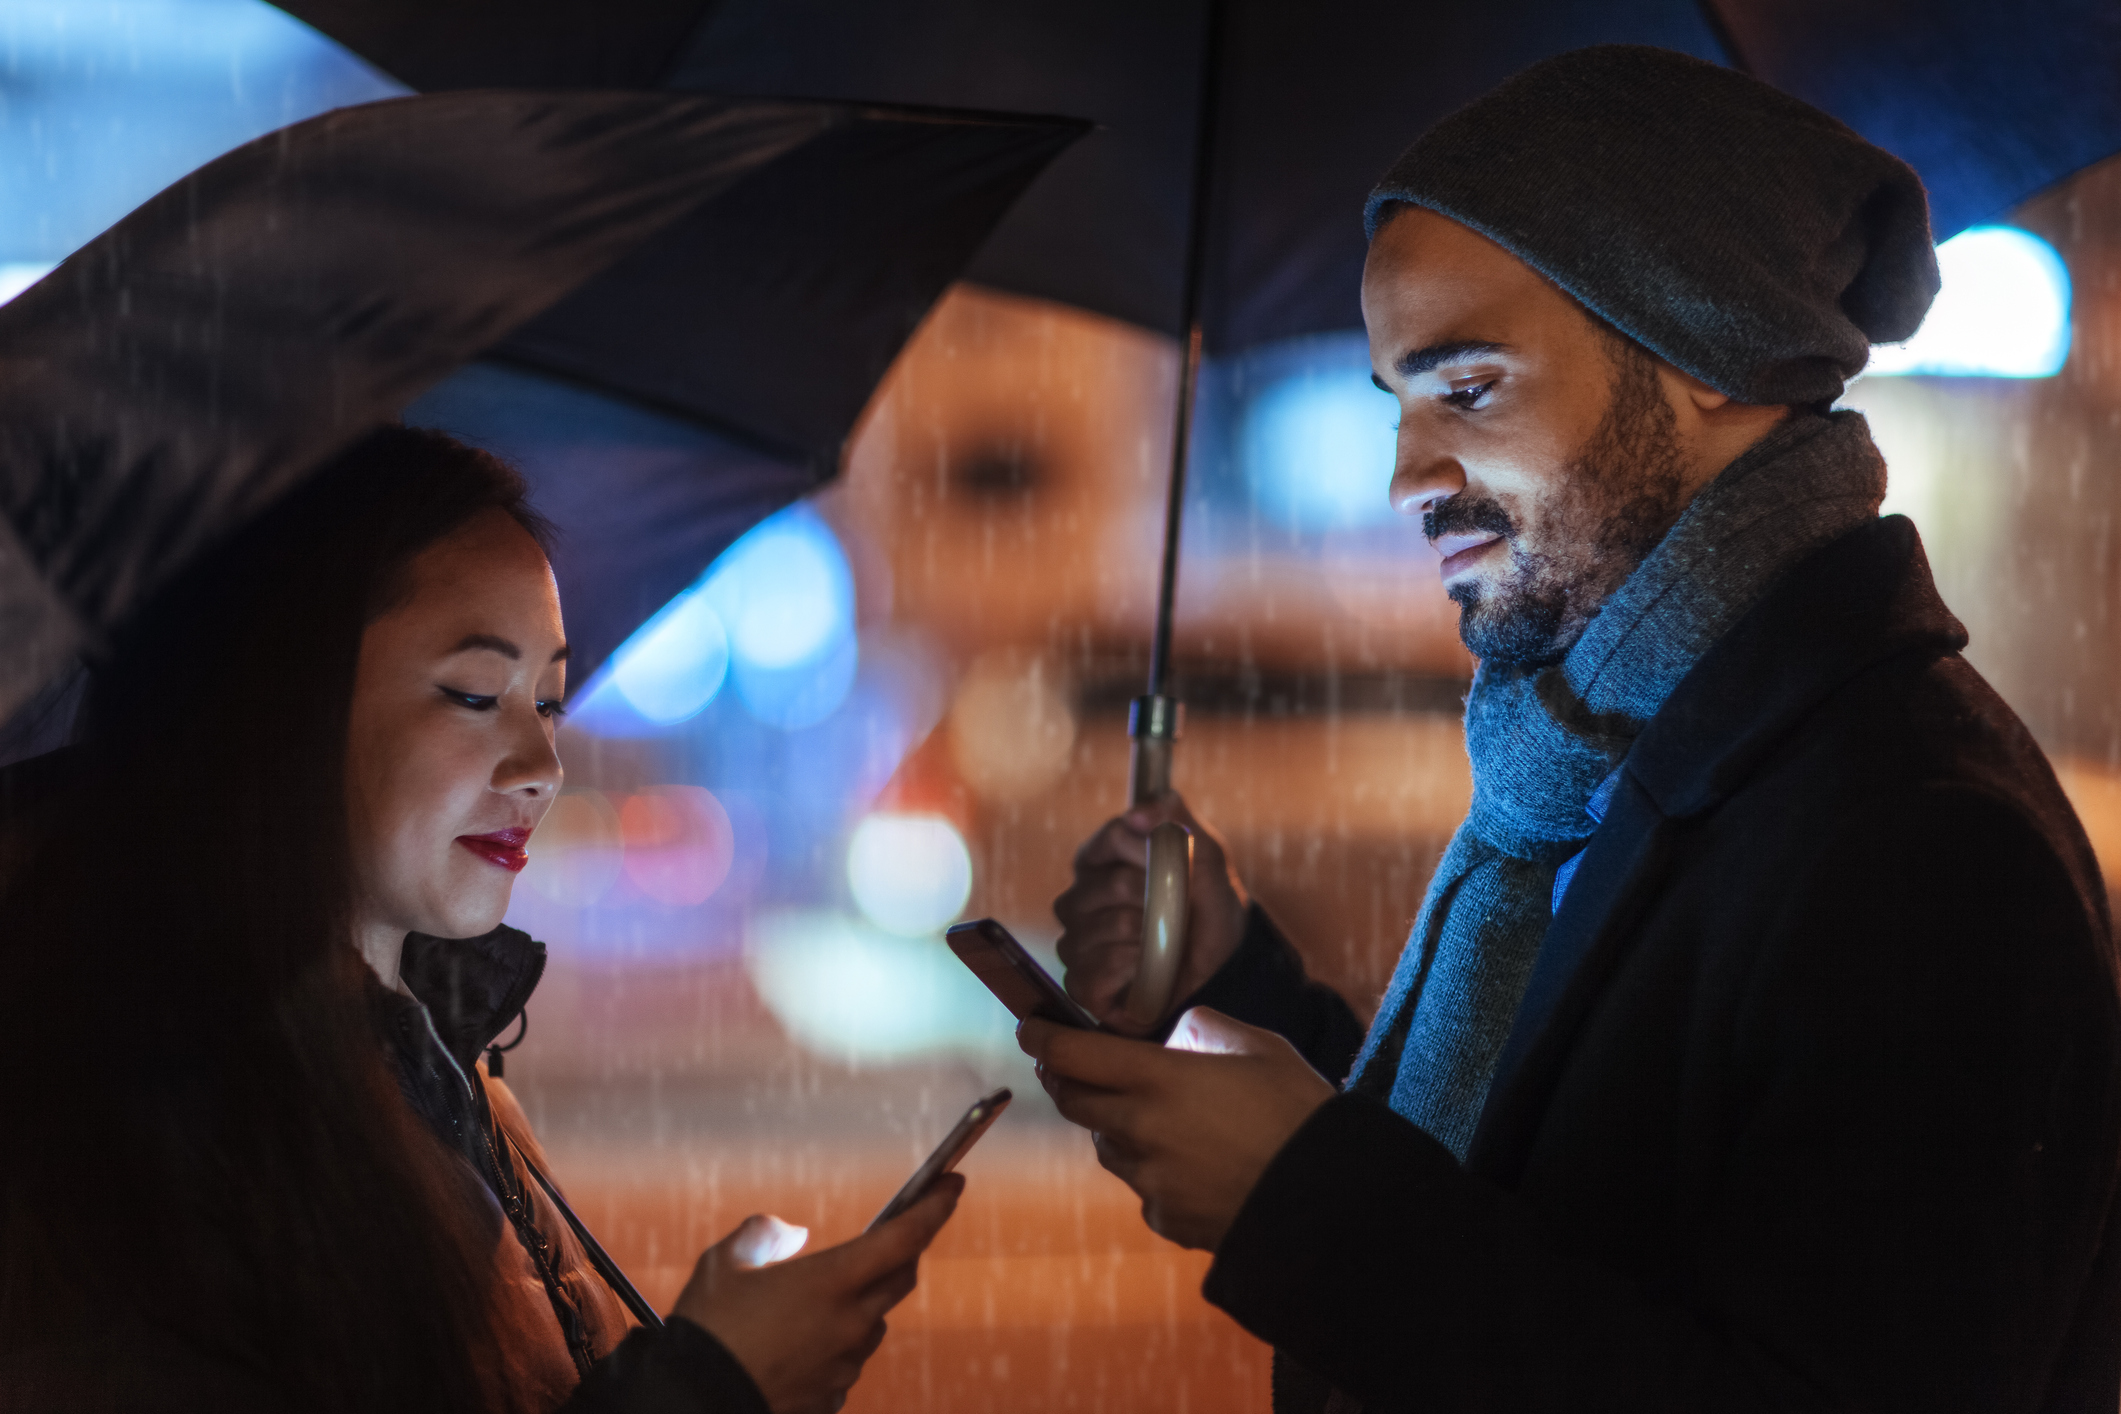 Deleting your dating app is the best way to show commitment in a new relationship